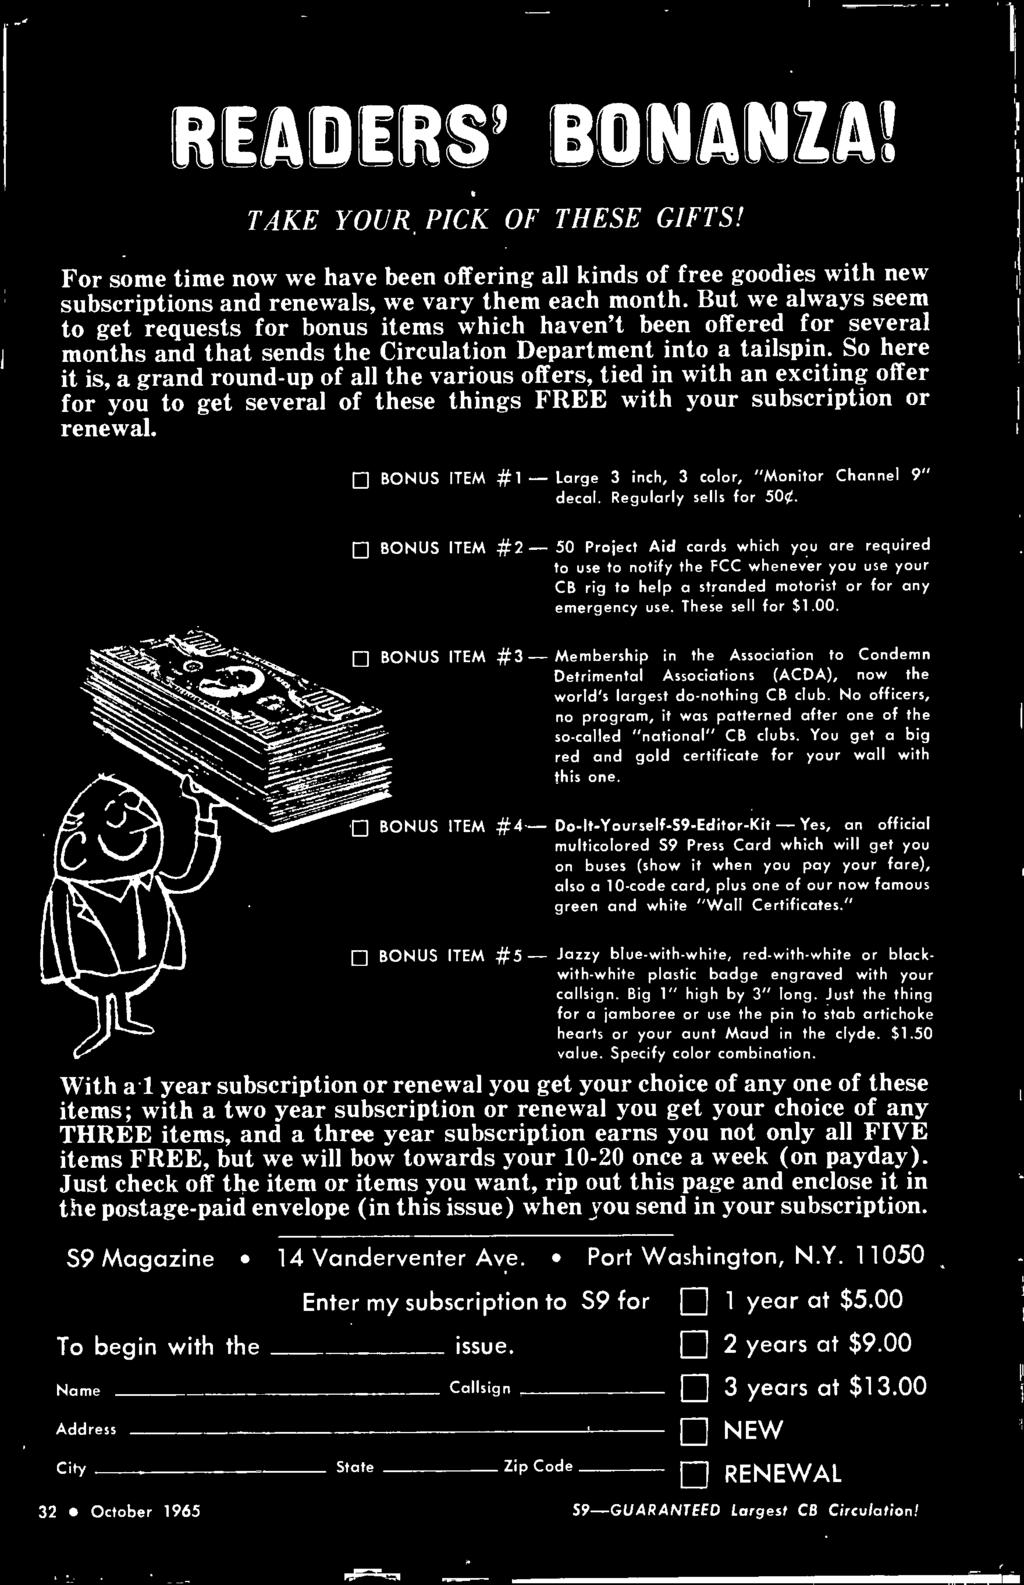 Official Cb Radio Magazine The Citizens Band Journal October 1965 Marx Generator Schematic And Pcb All Unmarked Resistors Are 1 Bonus Item 2 50 Project Aid Cards Which You Required To Use